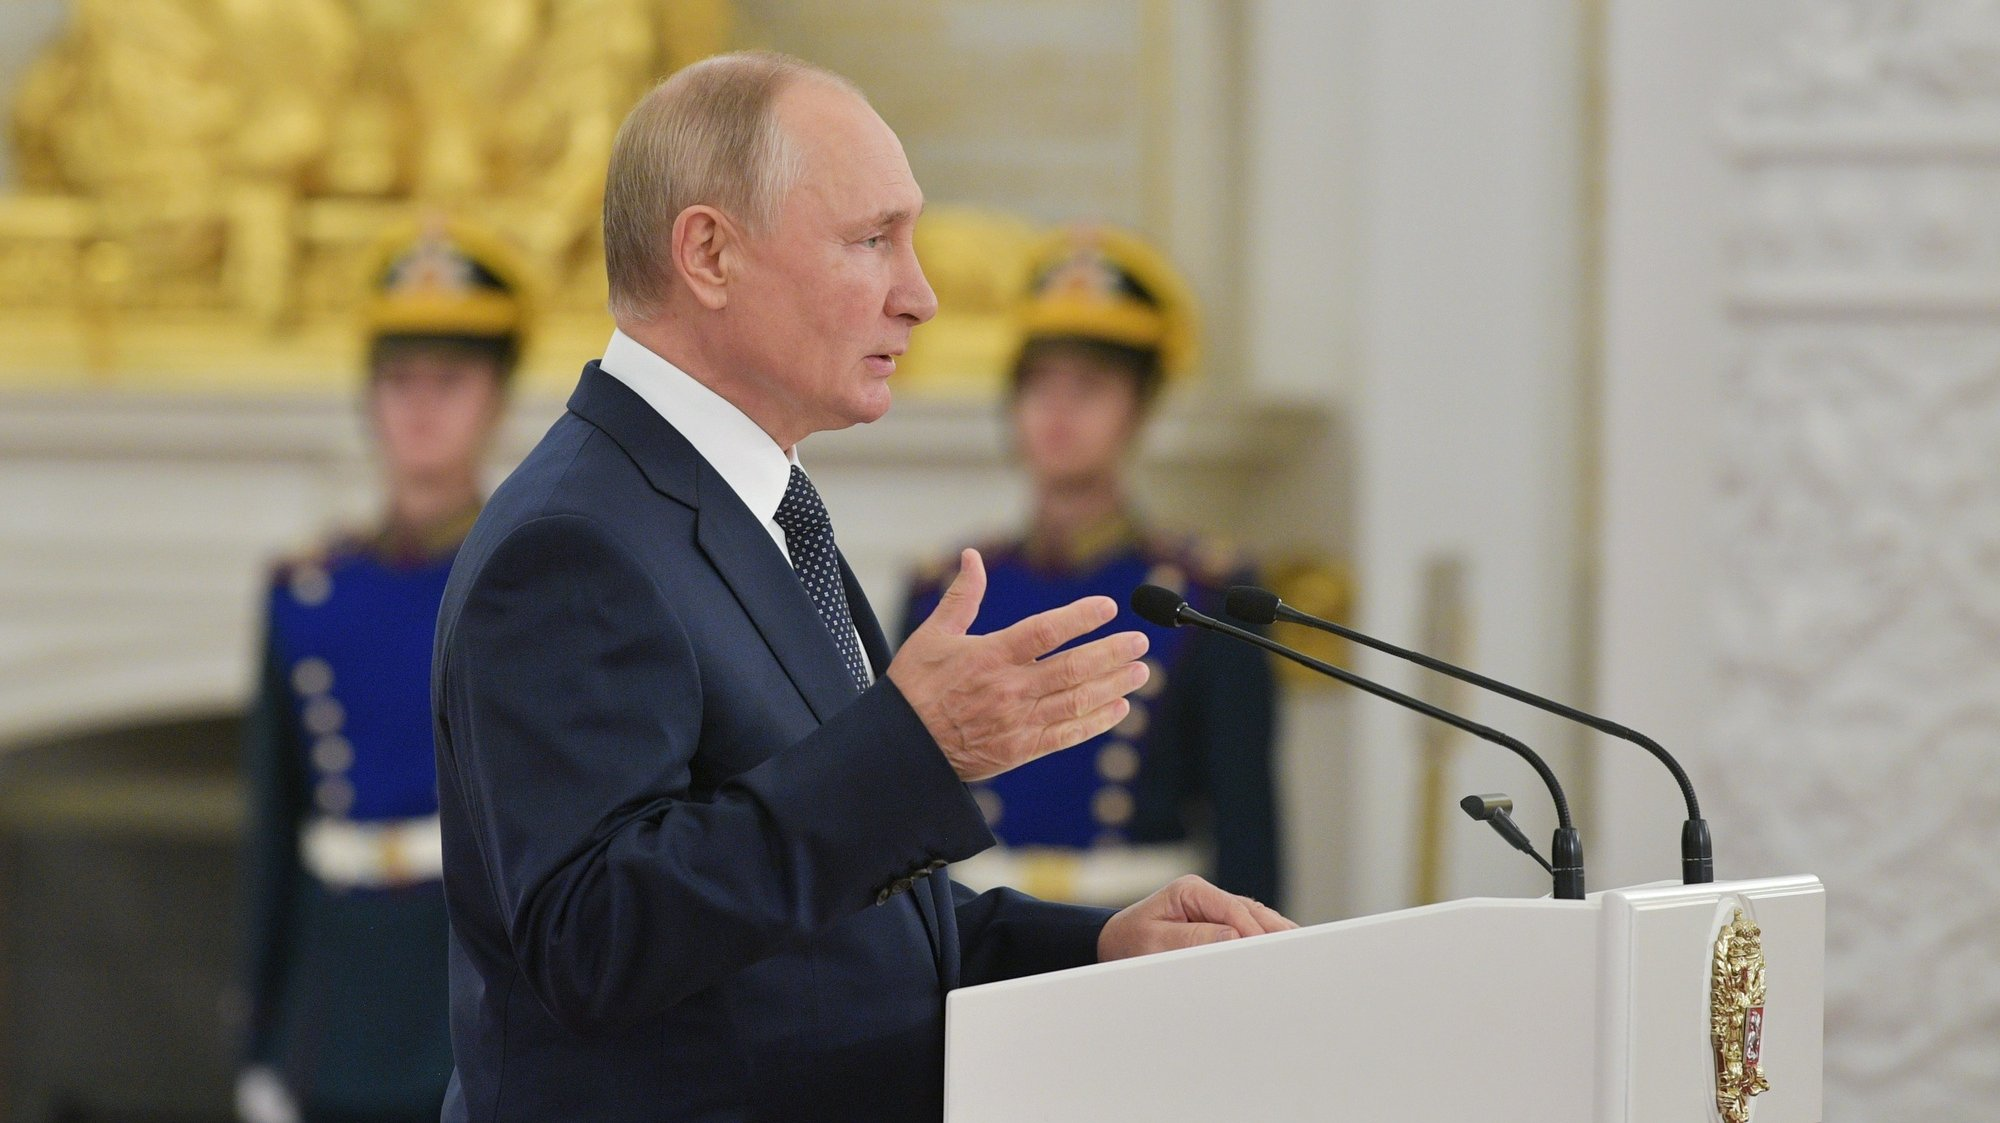 epa09461213 Russian President Vladimir Putin gives a speech during a meeting with Tokyo 2020 medalists at the Moscow Kremlin in Moscow, Russia, 11 September 2021. Summer Olympic Games were held from 23 July to 08 August in Japan. Russia won 71 medals: 20 gold, 28 silver and 23 bronze.  EPA/EVGENY BYATOV/SPUTNIK/KREMLIN POOL